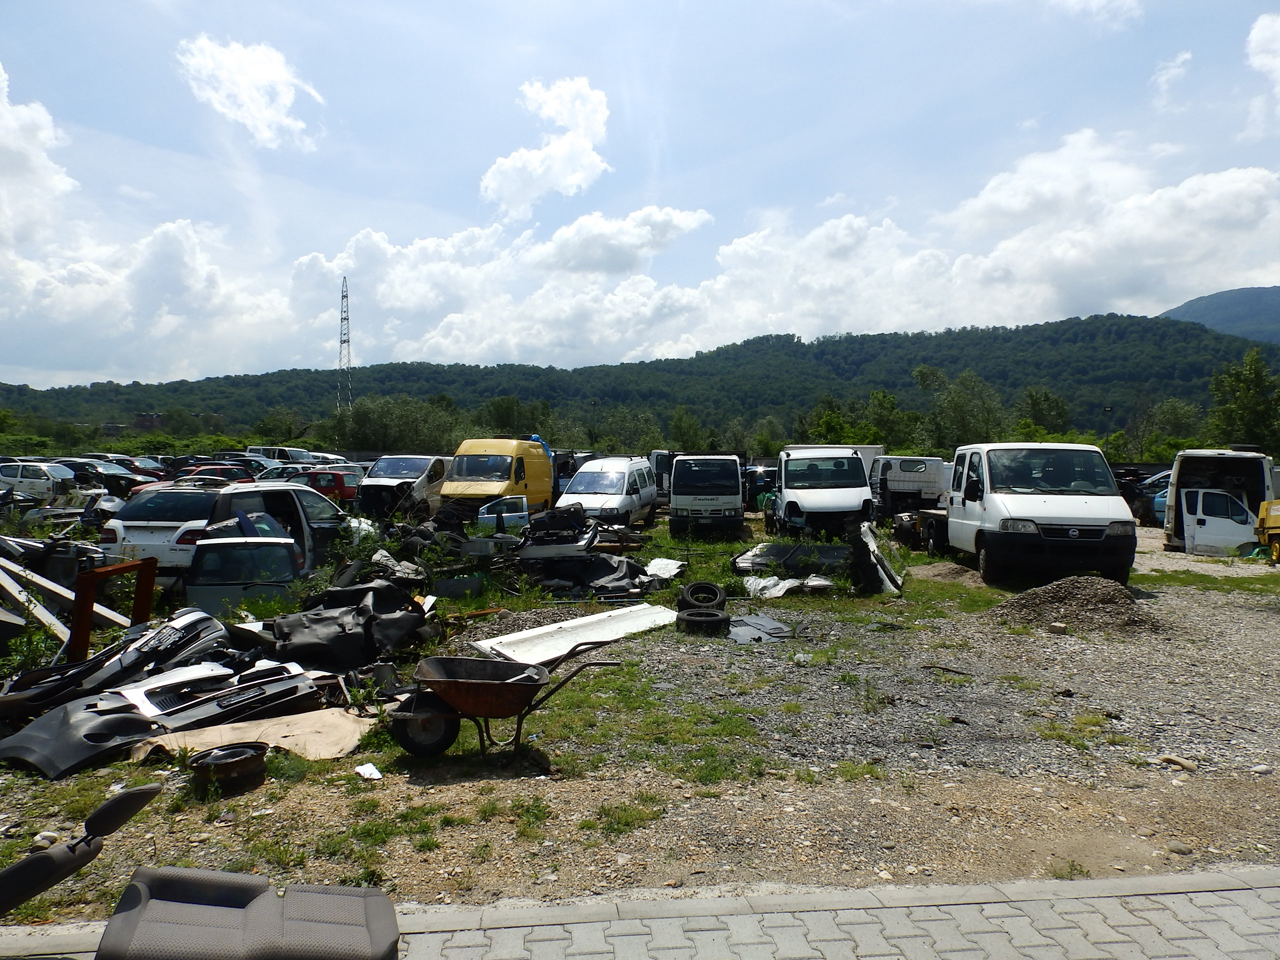 SERVICE TOWING SERVICE AND CAR CENTER GORAN-KEBA Used car parts Loznica - Photo 6